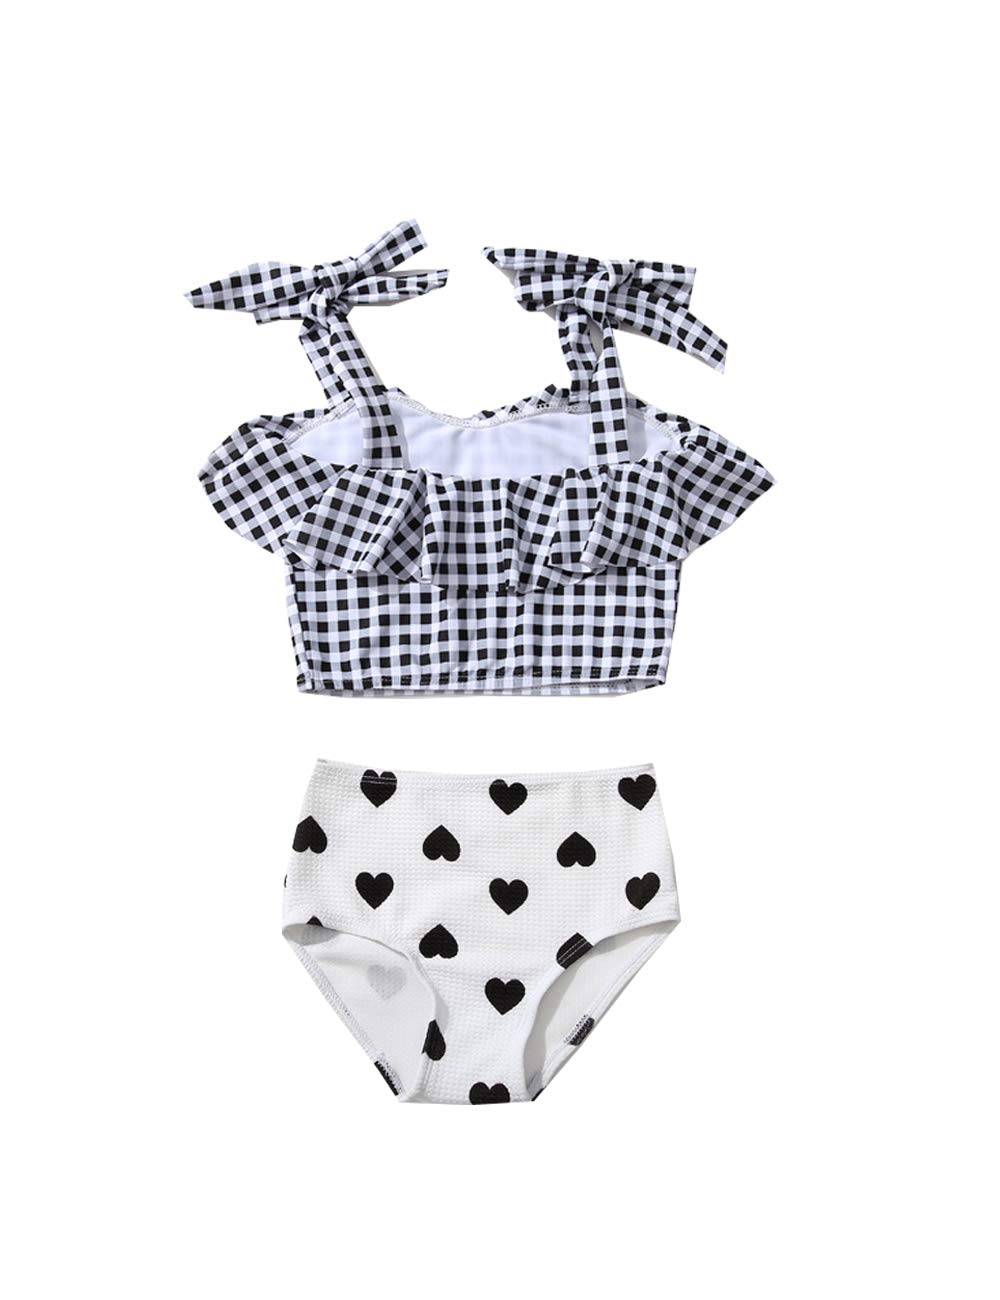 bilison Toddler Baby Girl Swimwear Cute Straps Bikini Set Hearts Print Swimsuit Beachwear Outfits